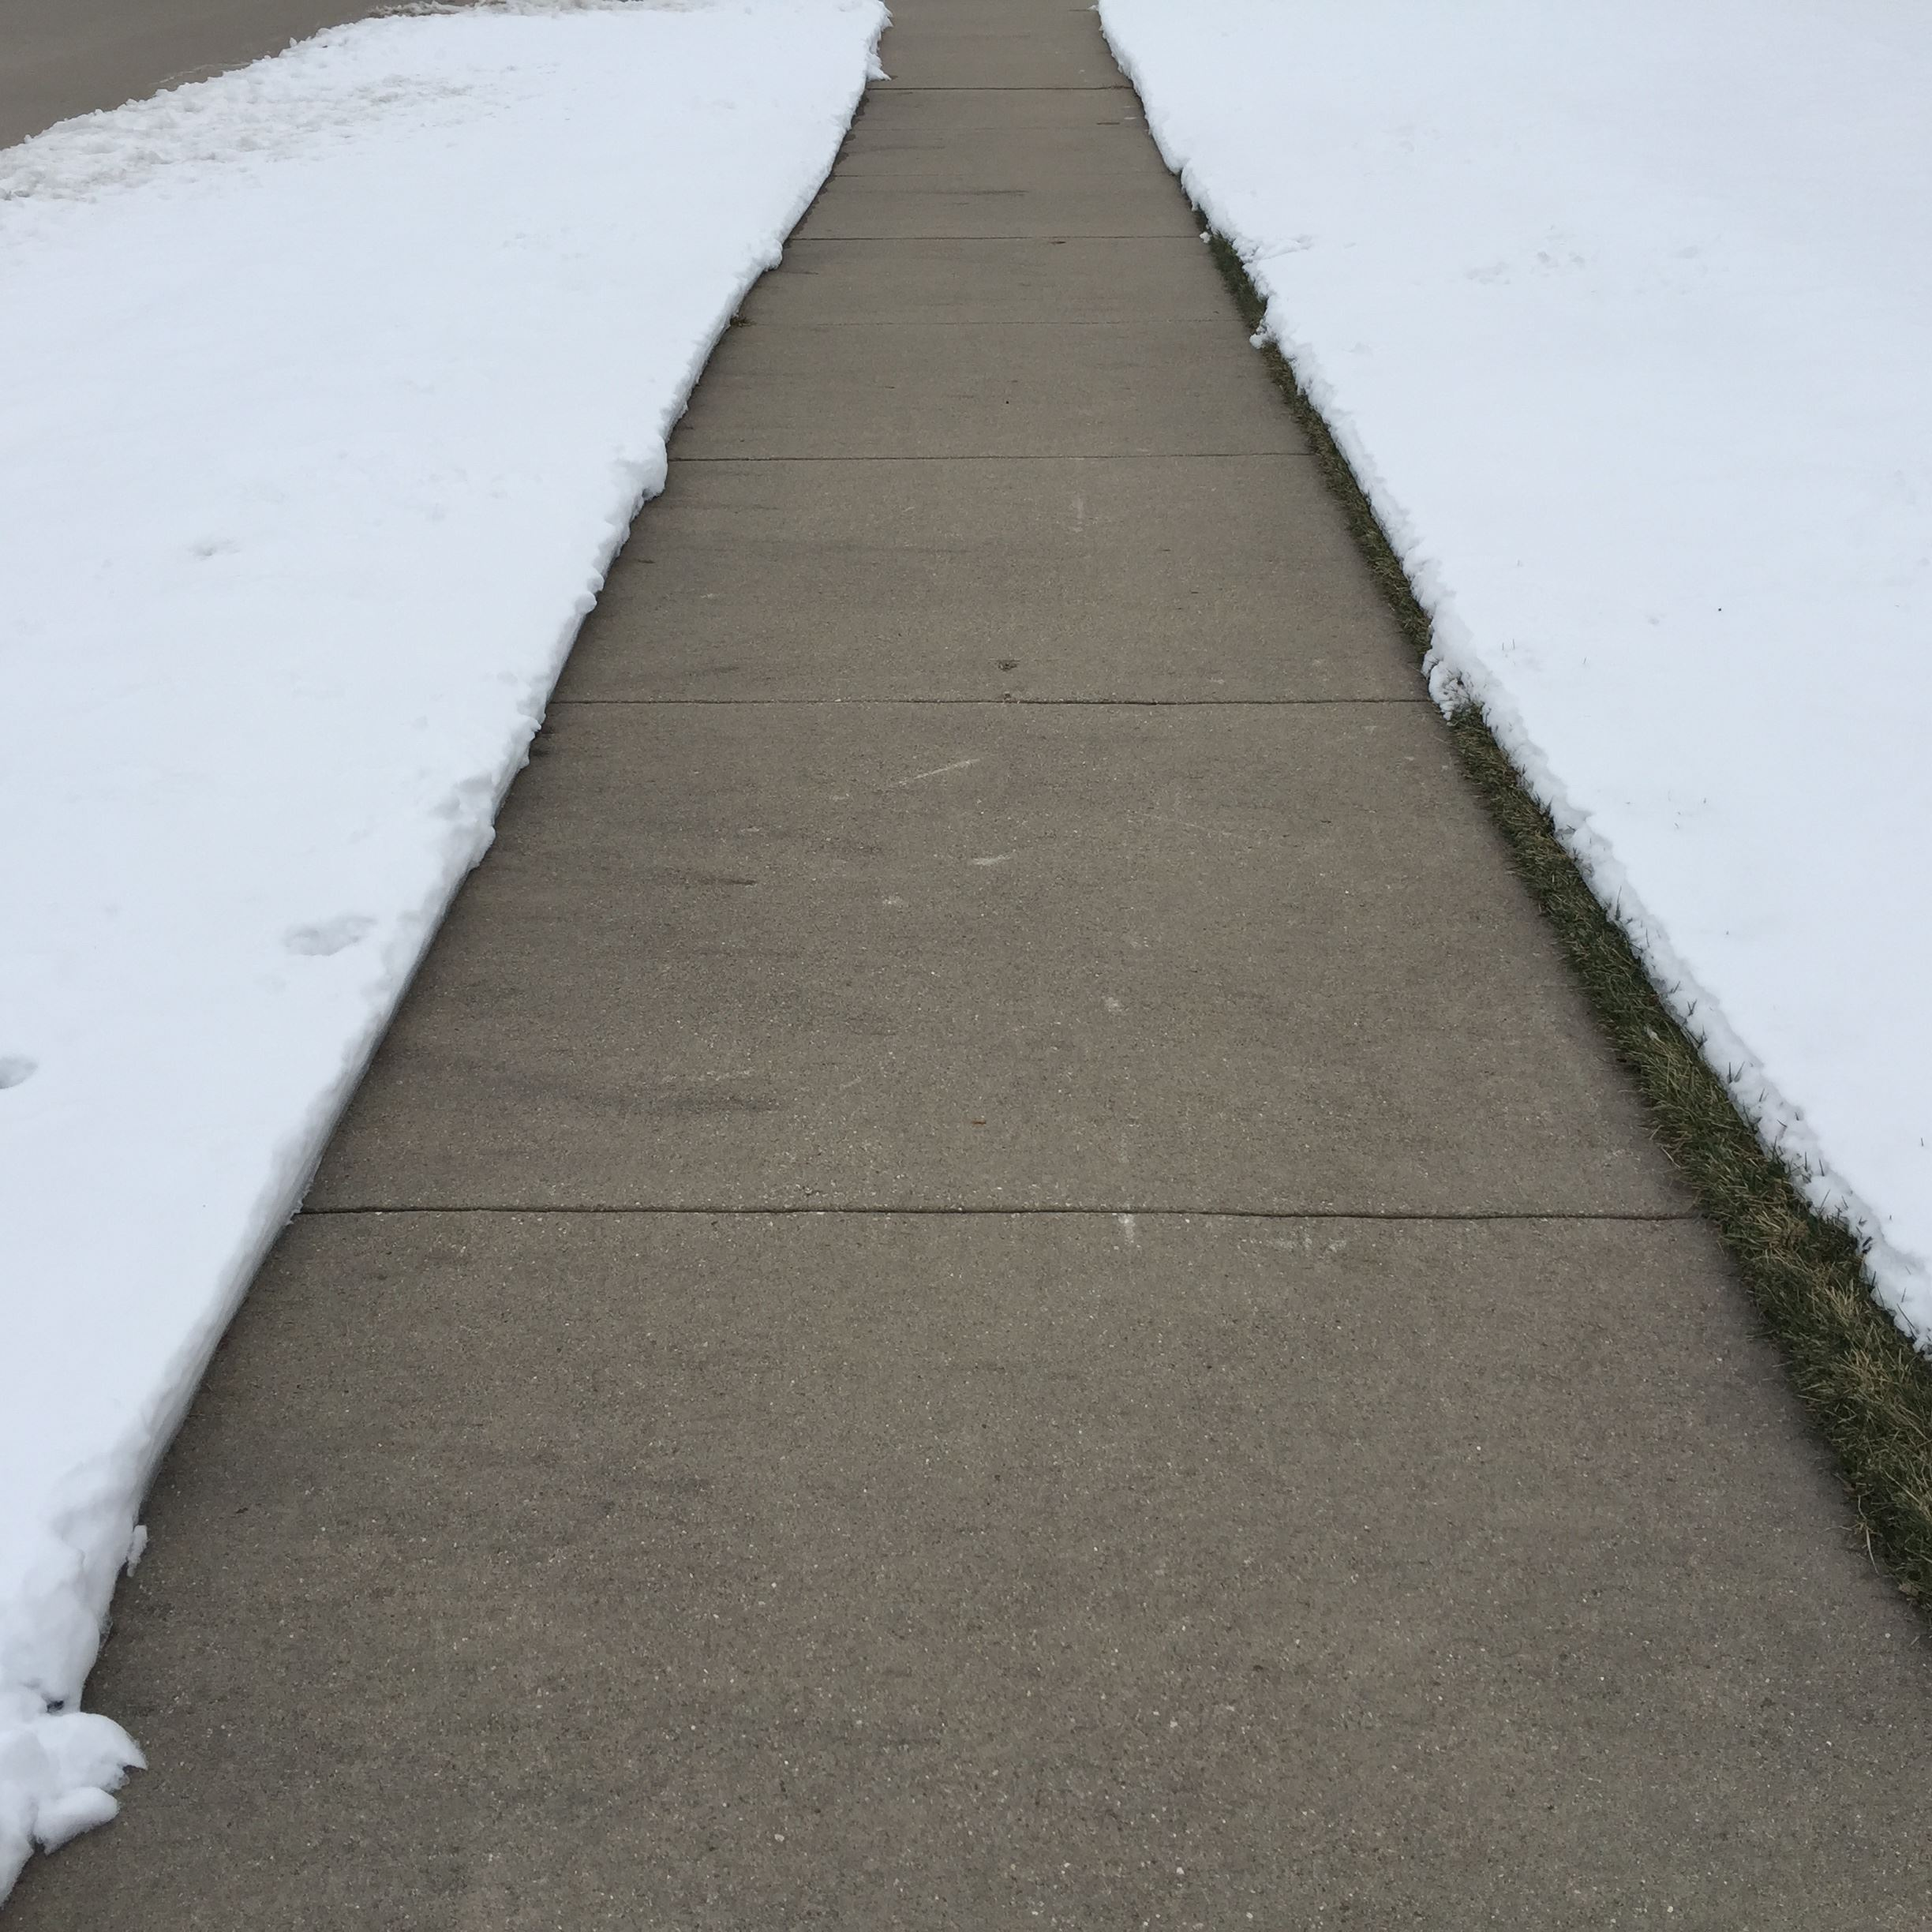 Responsibility of property owners to clear snow from sidewalks